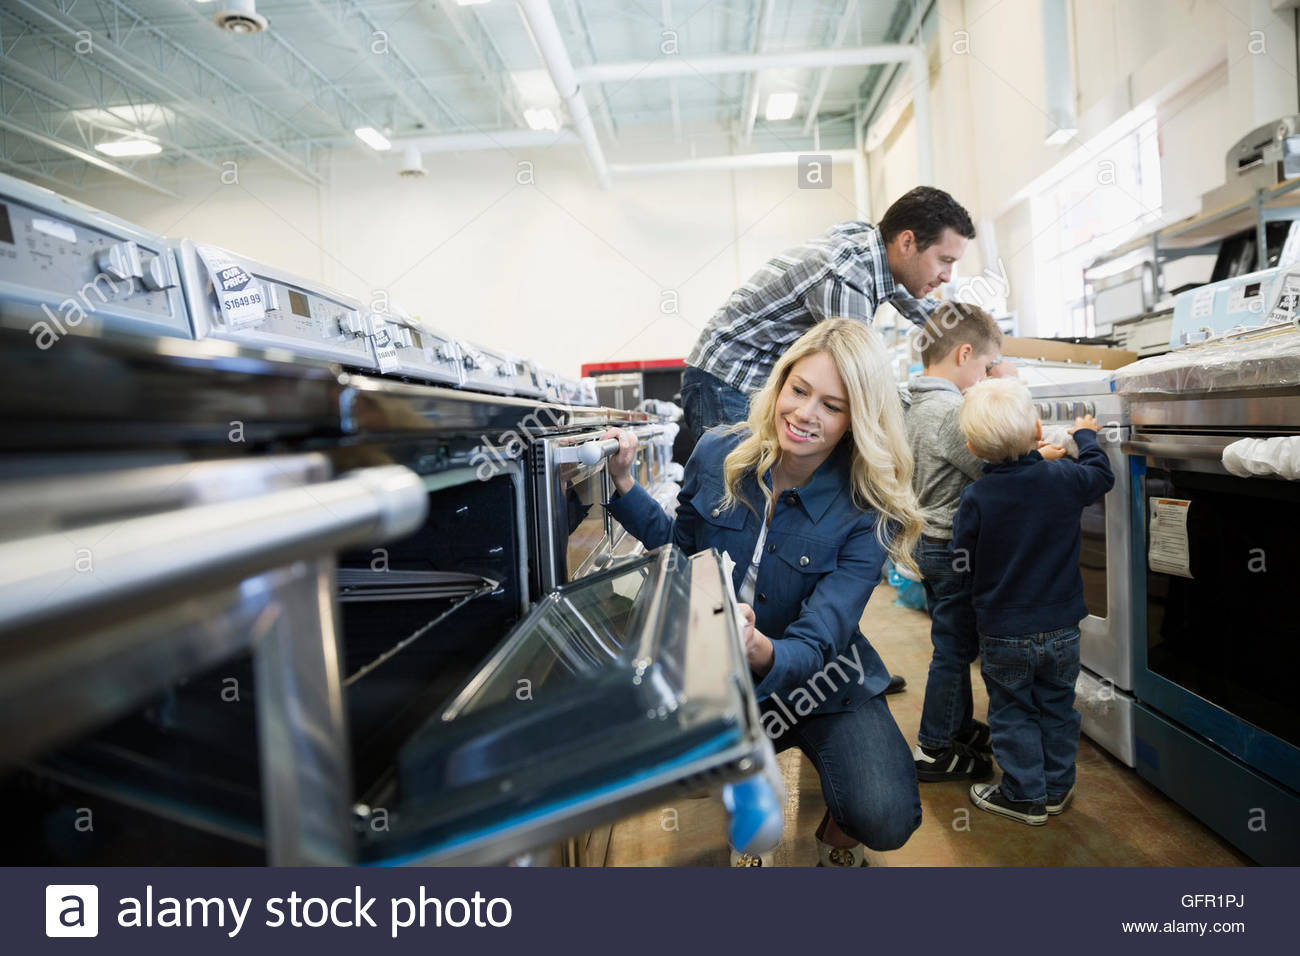 Young family shopping for ovens in appliance store - Stock Image